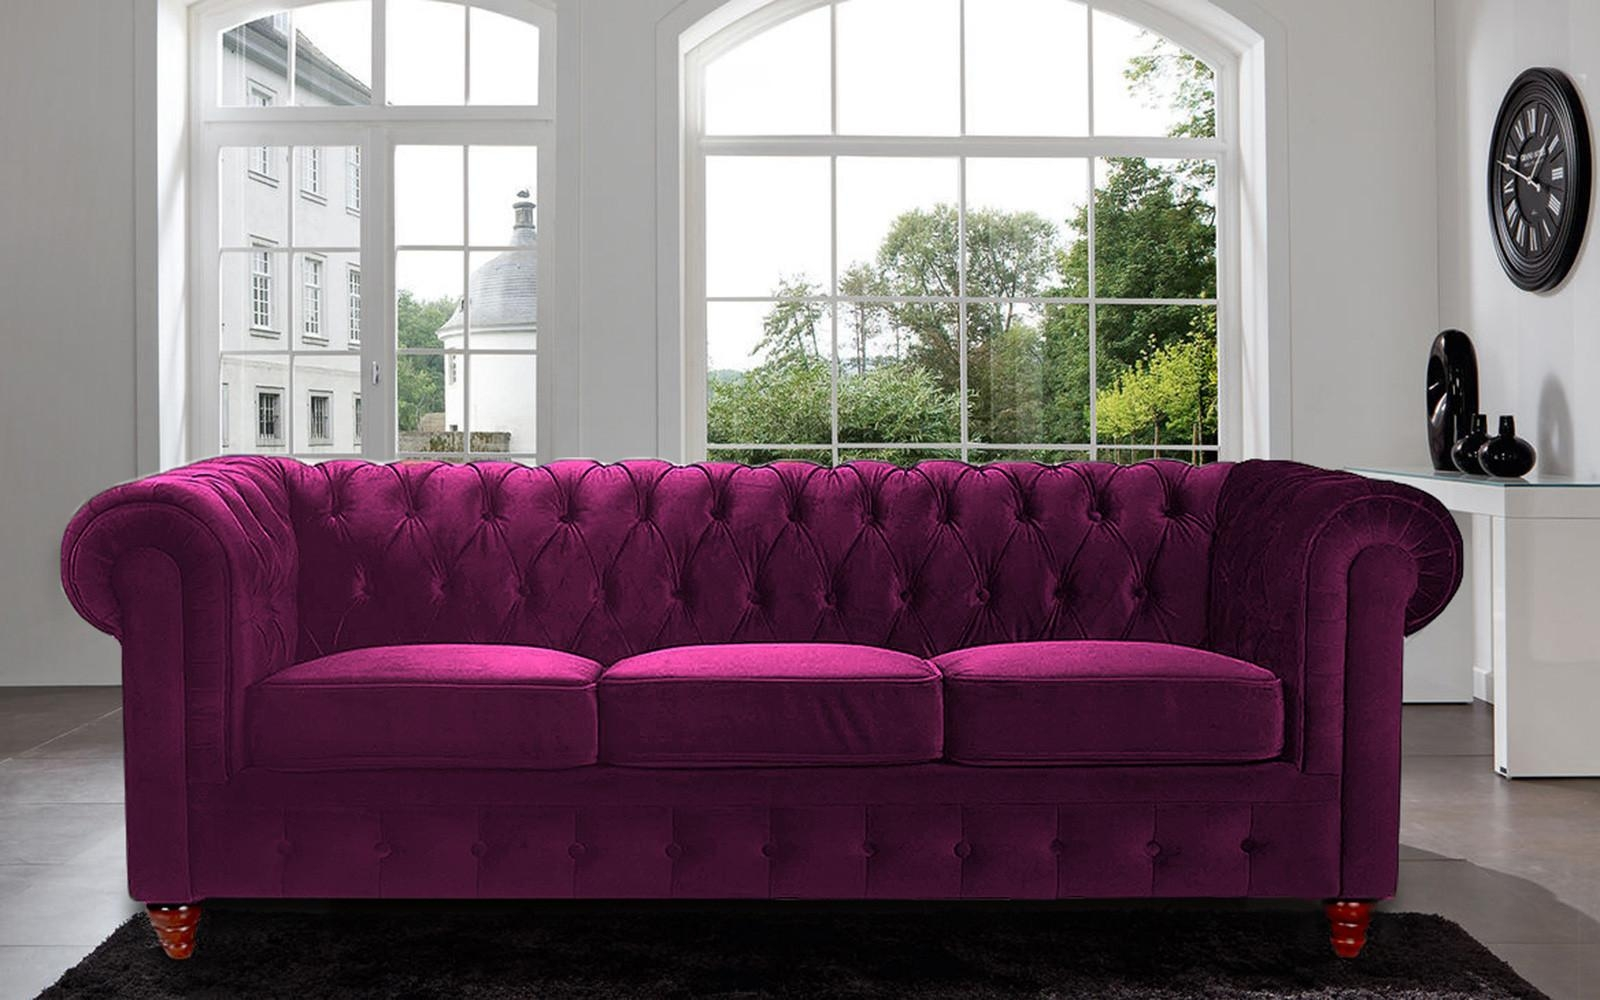 Classic Scroll Arm Tufted Velvet Chesterfield Large Sofa – Walmart Throughout Velvet Purple Sofas (Image 5 of 20)